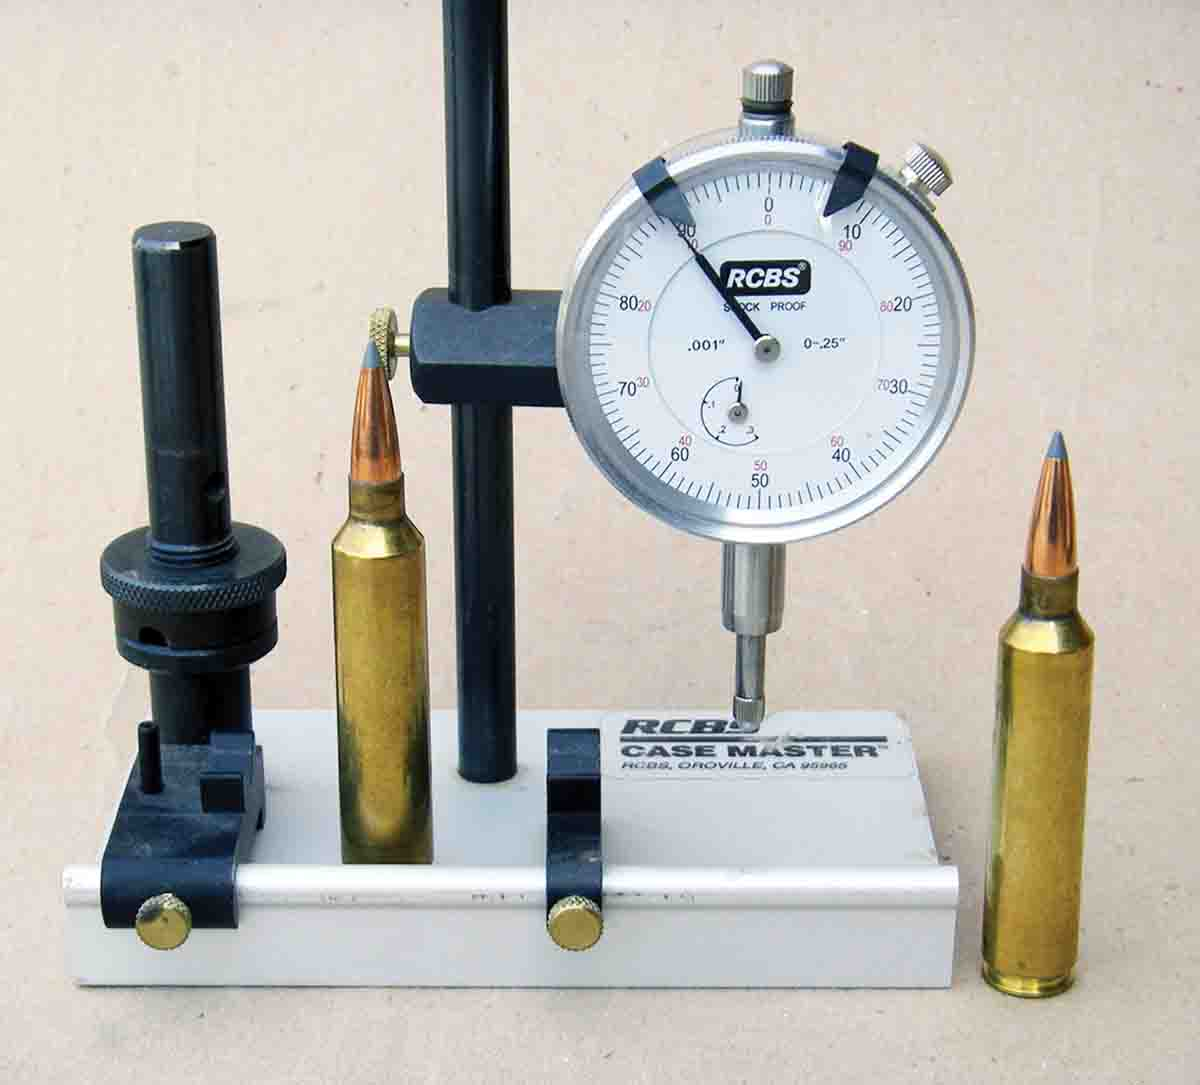 Checking cartridges for excessive runout can be highly beneficial to accuracy.